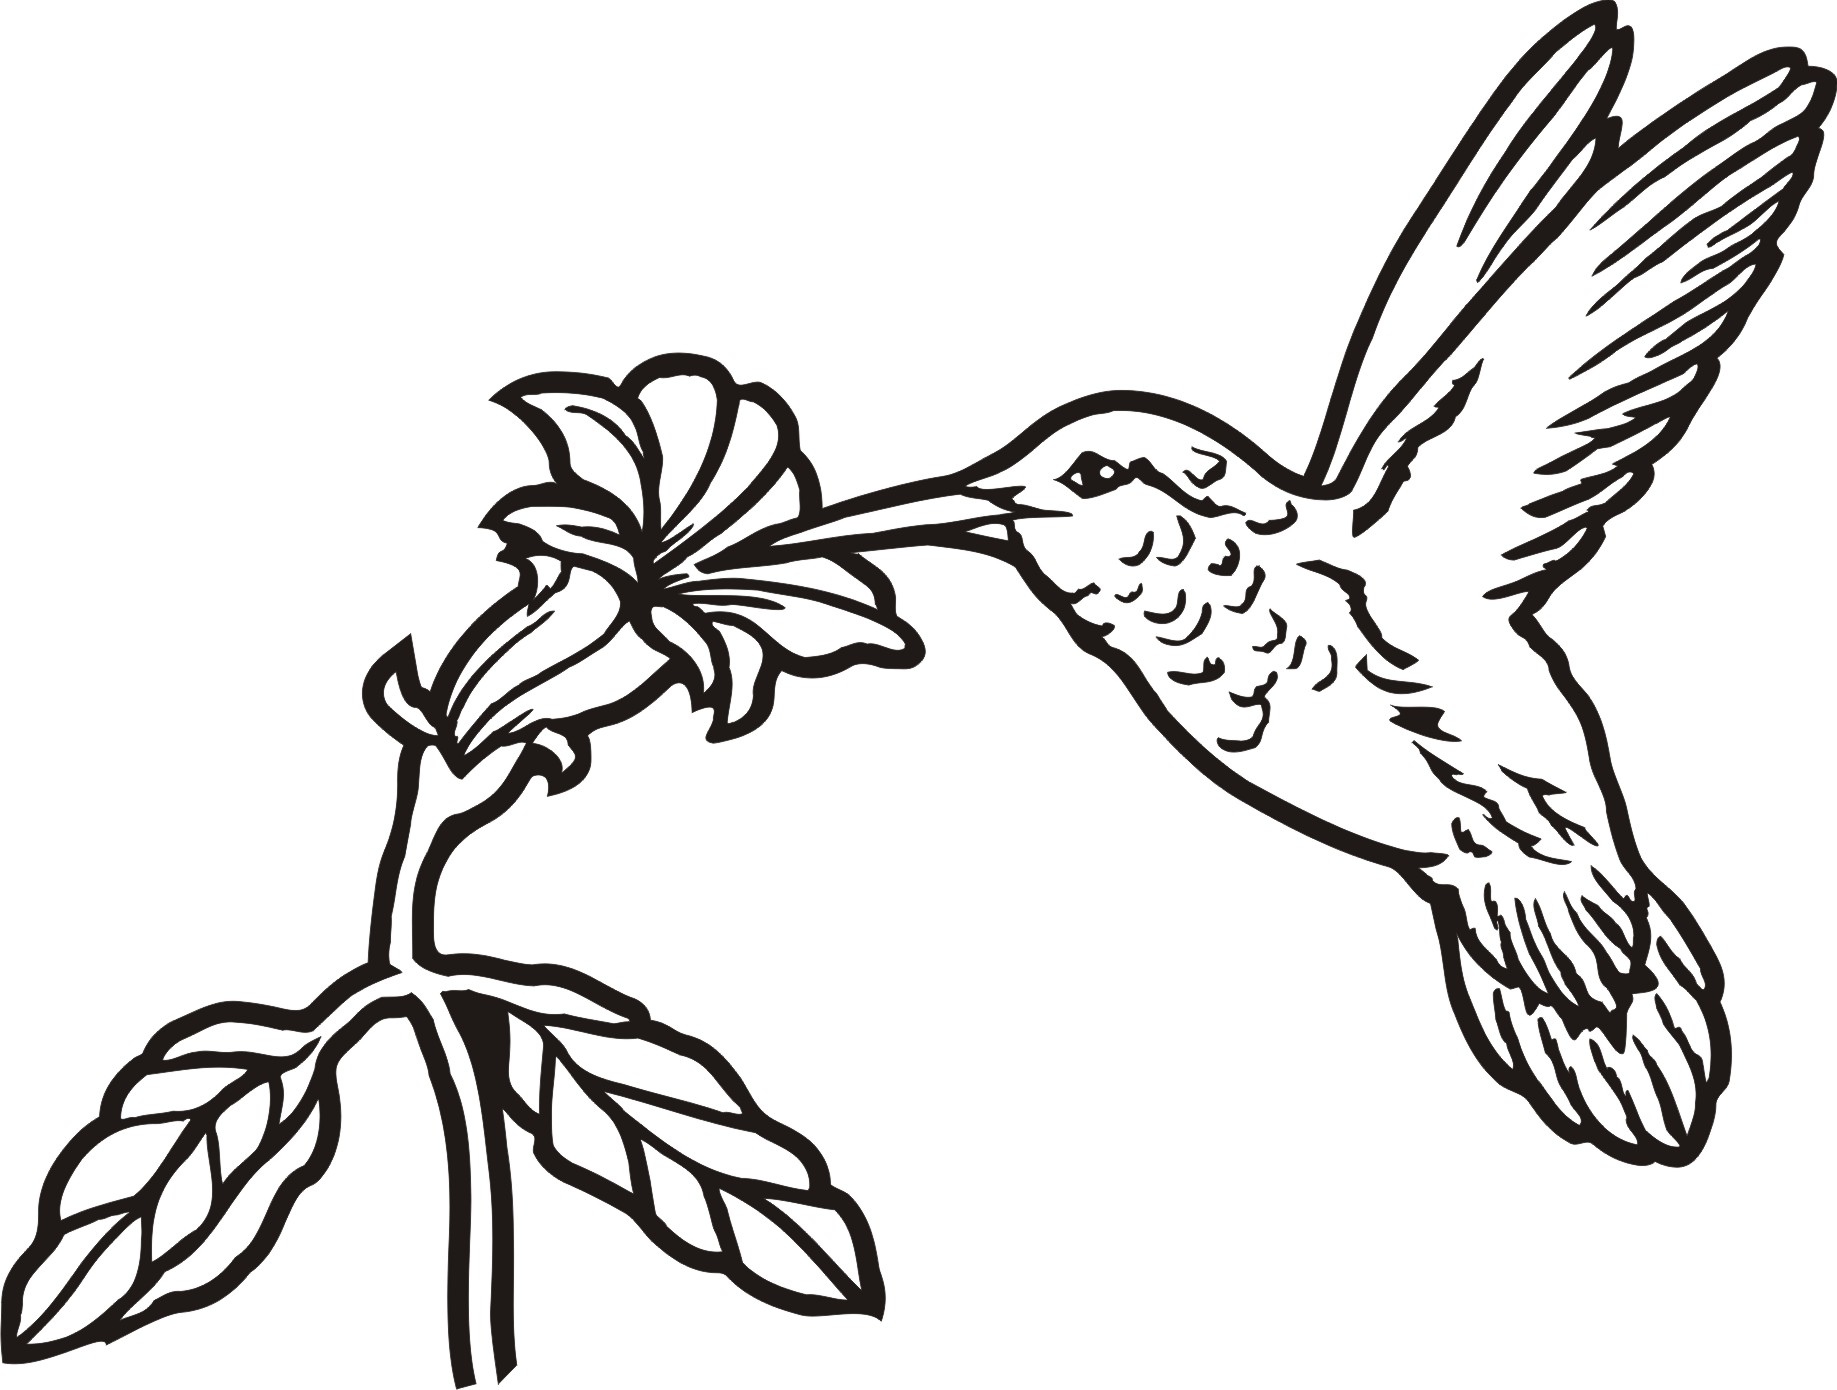 Hummingbird with flower clipart image black and white download Hummingbird Line Art | Free download best Hummingbird Line Art on ... image black and white download